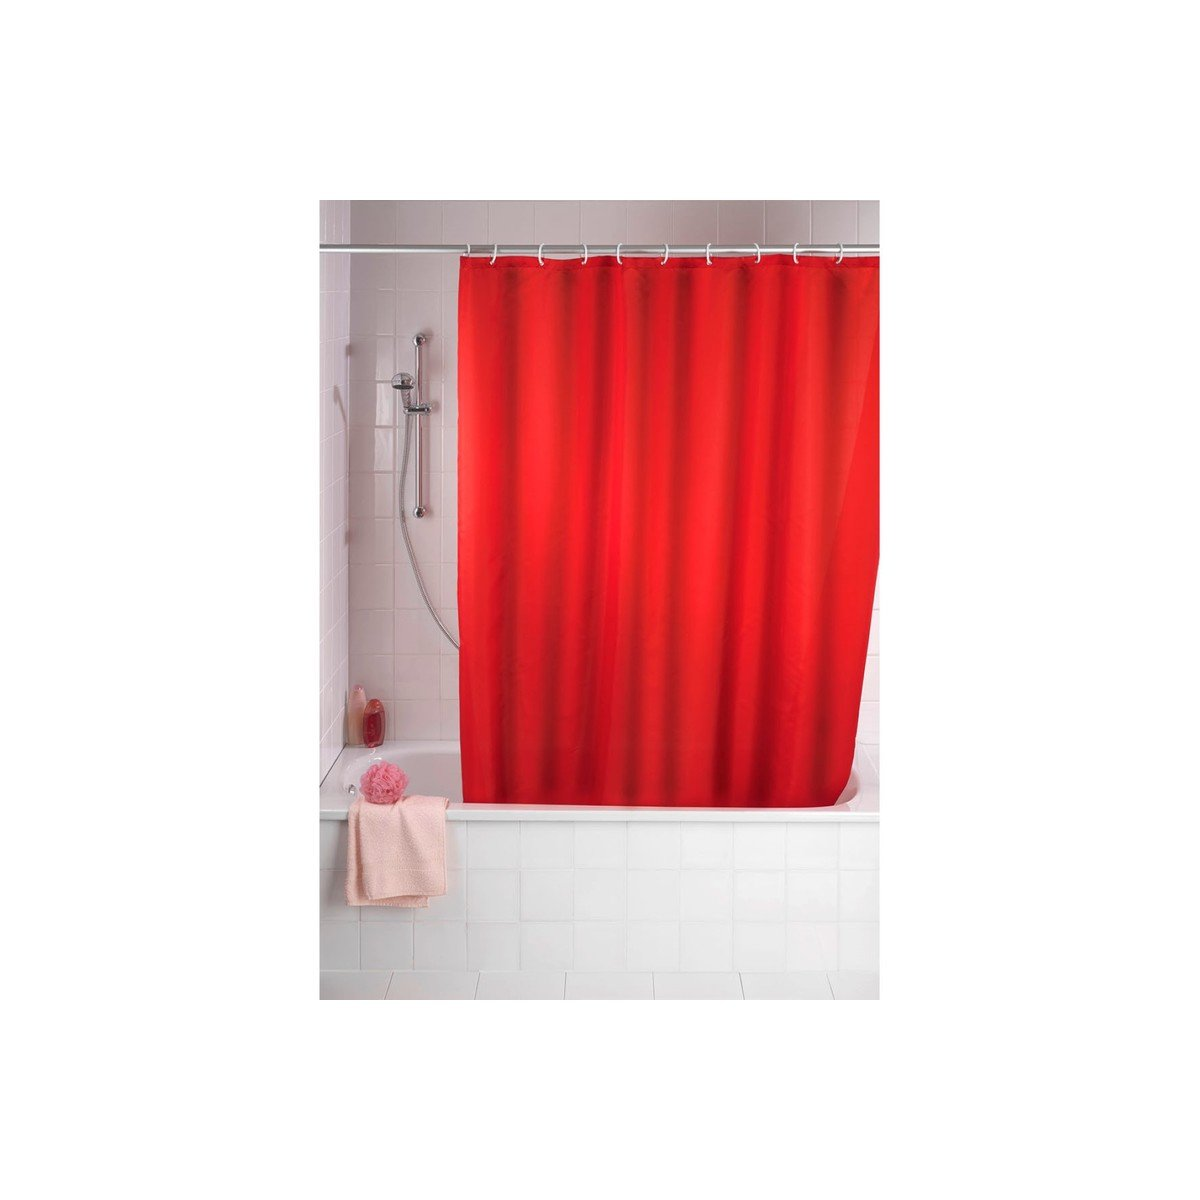 wenko rideau antimold rideau de douche 180x200cm polyester rouge 20037100. Black Bedroom Furniture Sets. Home Design Ideas